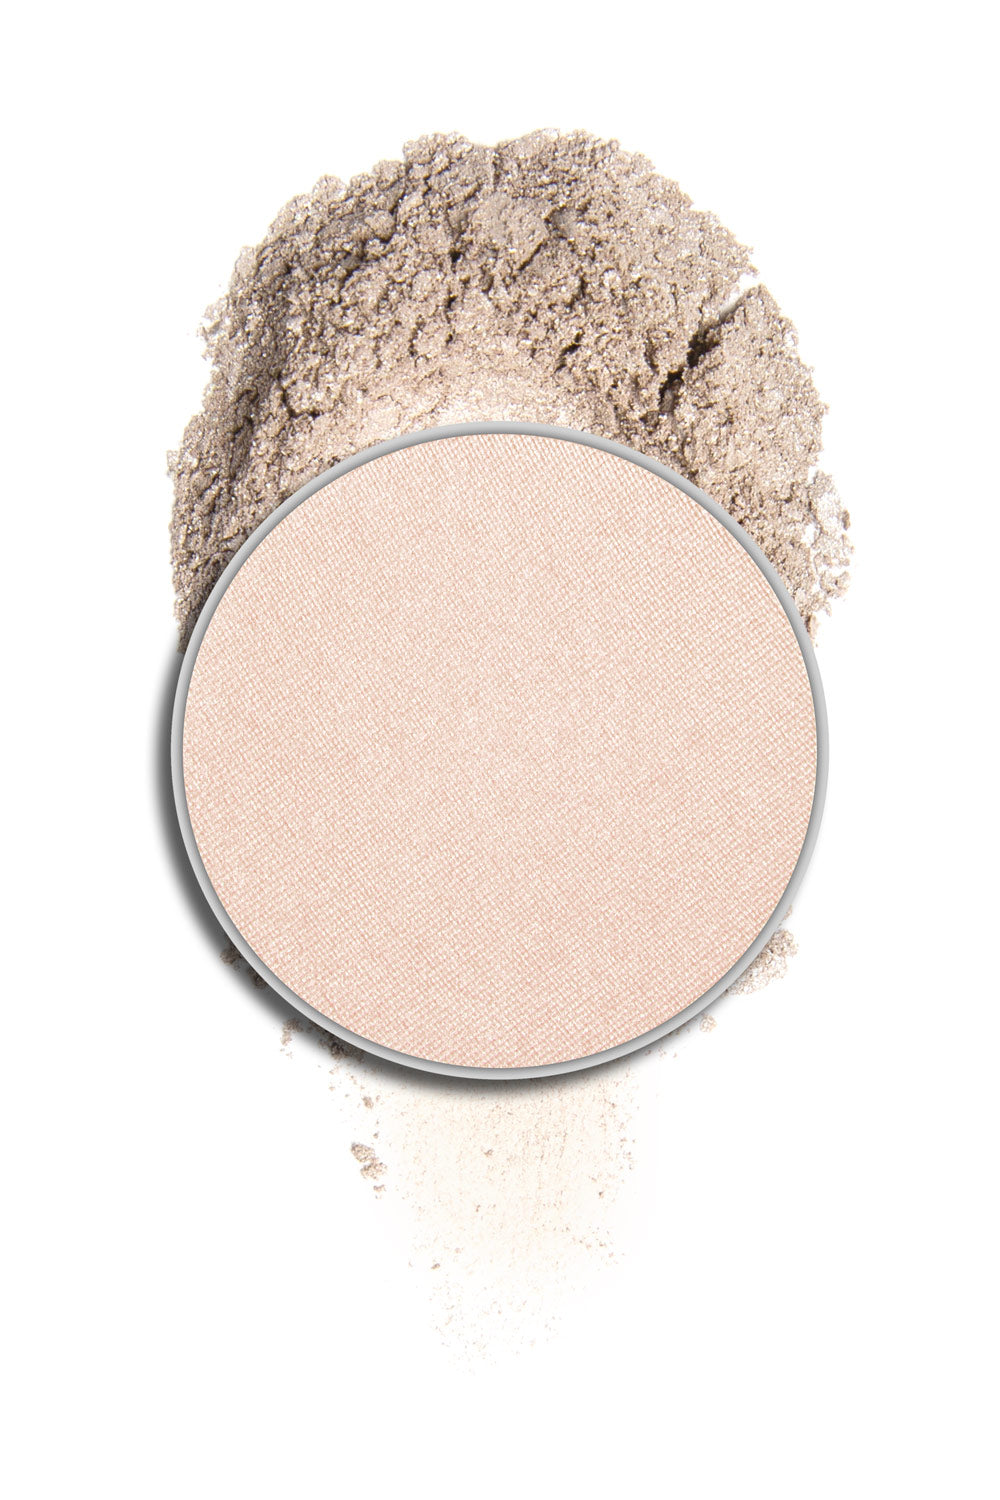 Sandy Peach - Type 3 Eyeshadow Pan